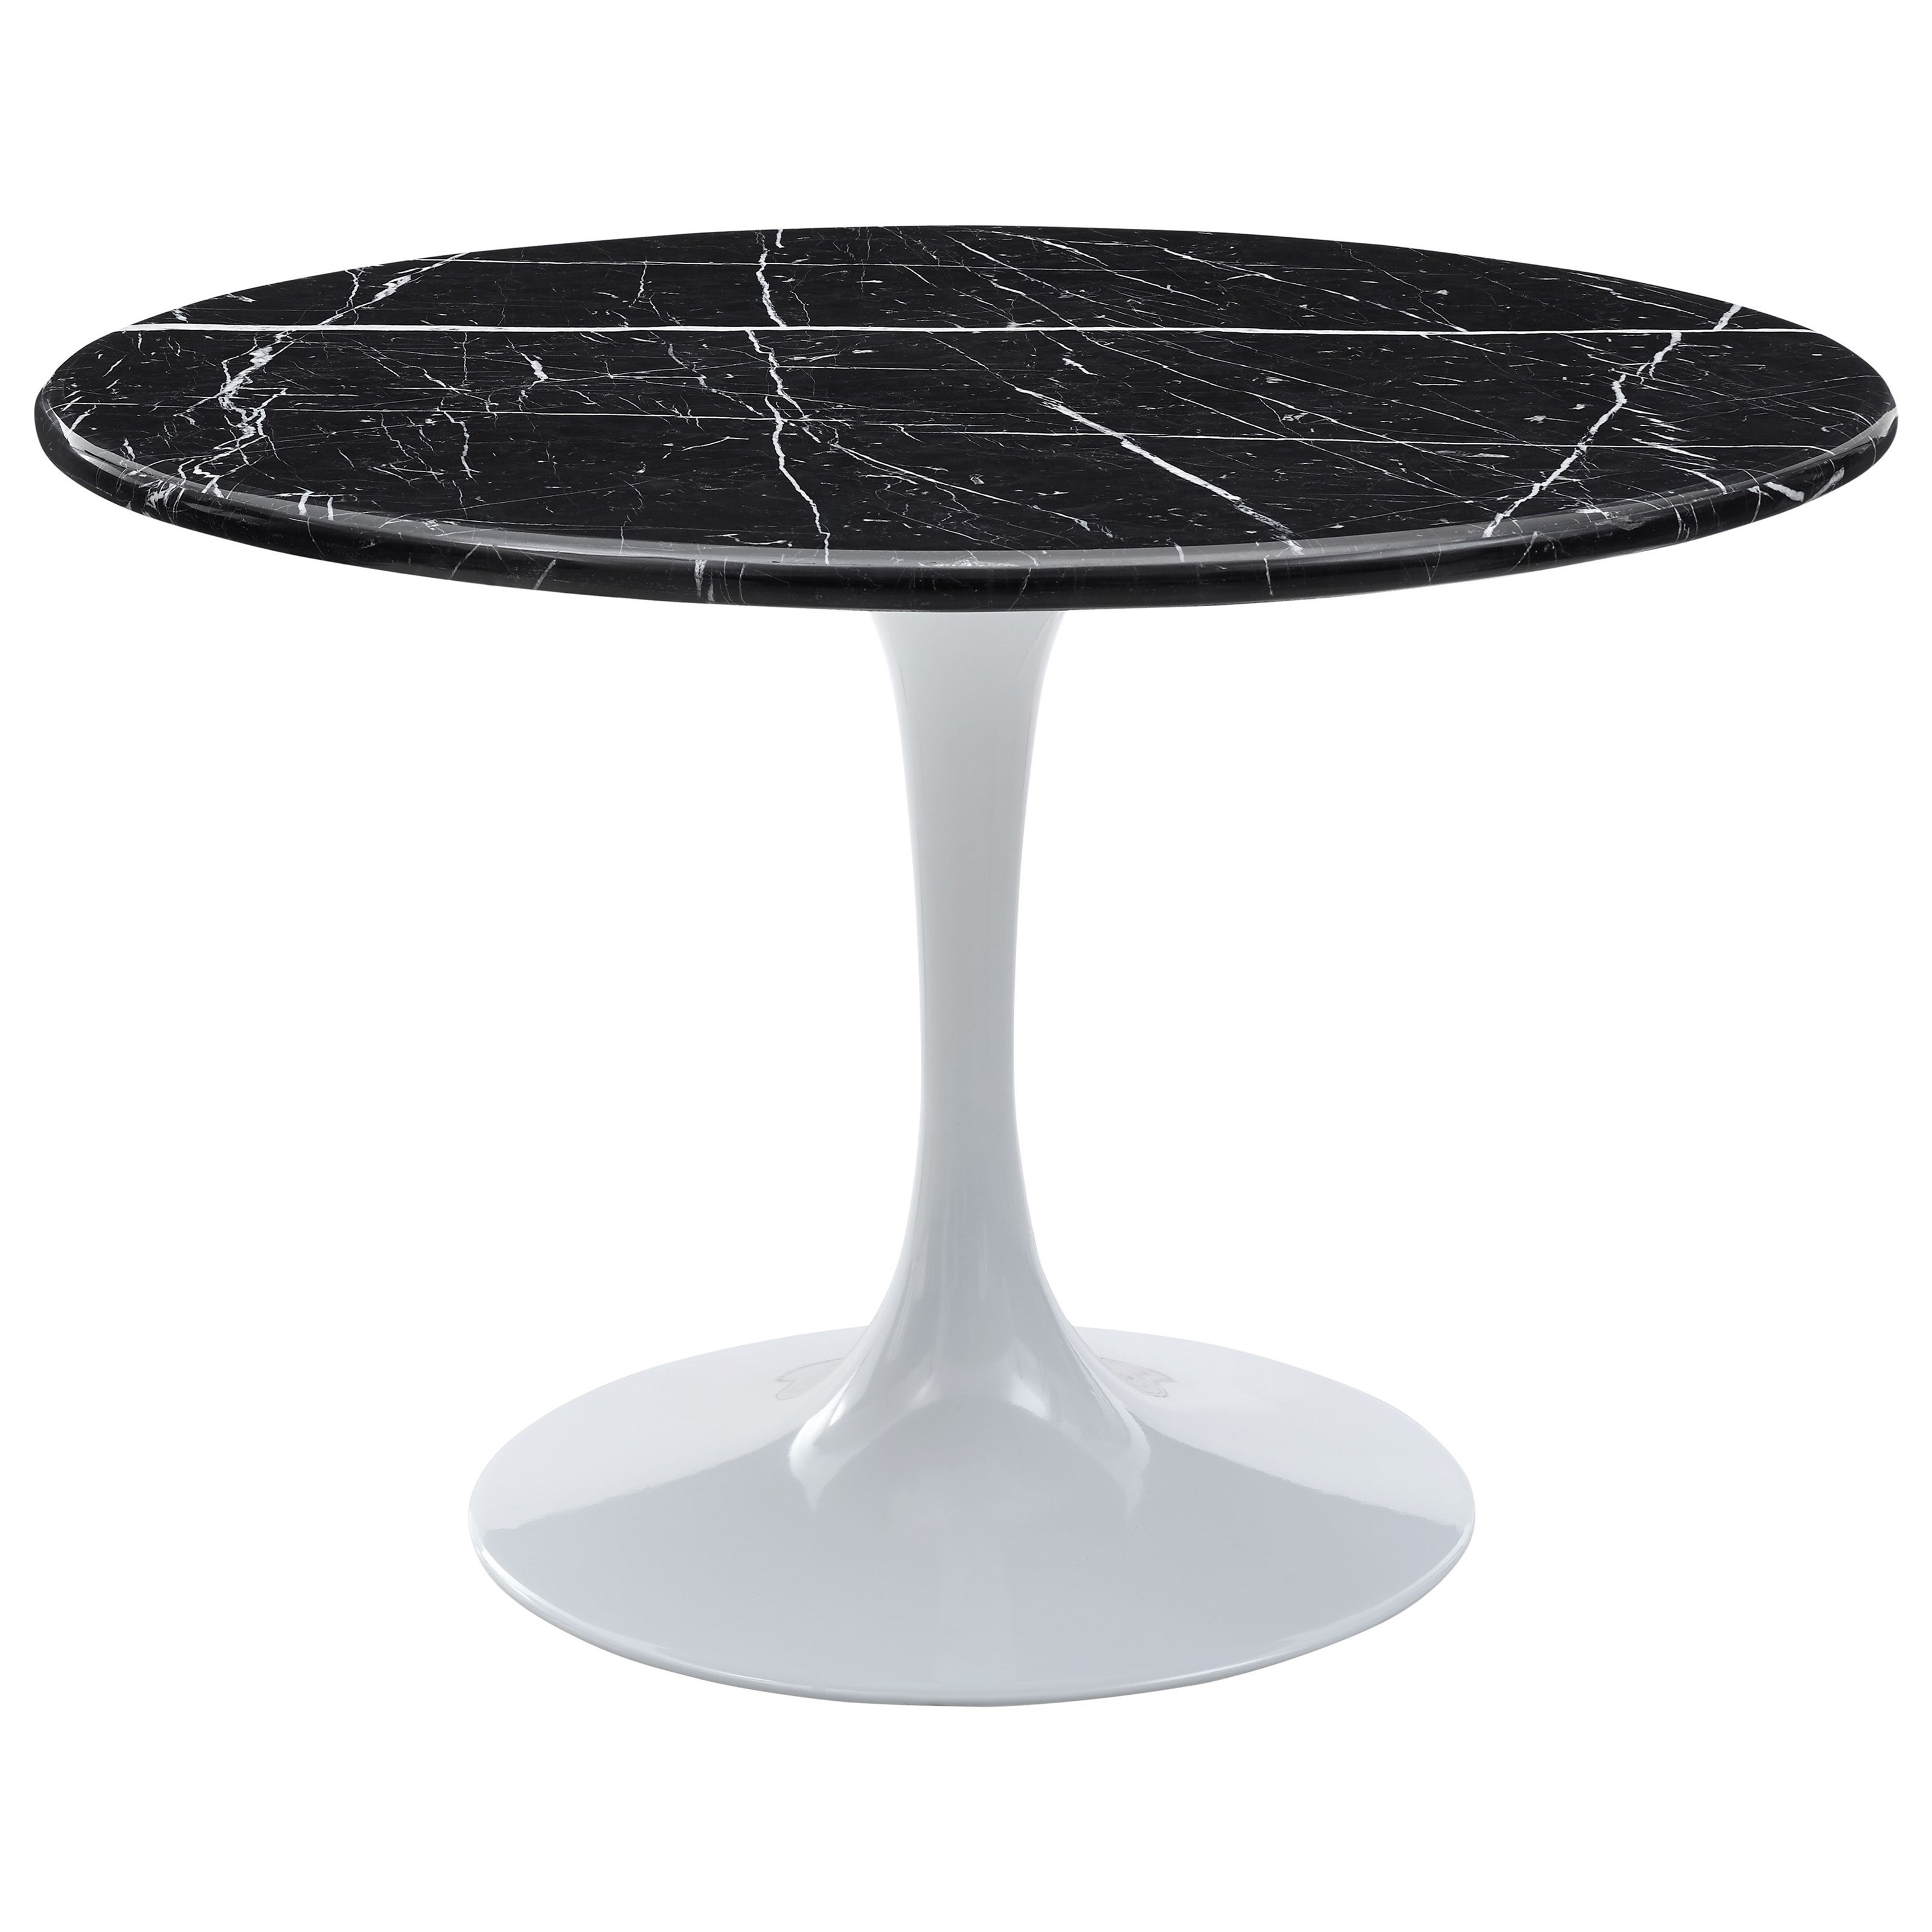 Colfax Table - Black Top & White Base by Steve Silver at Walker's Furniture